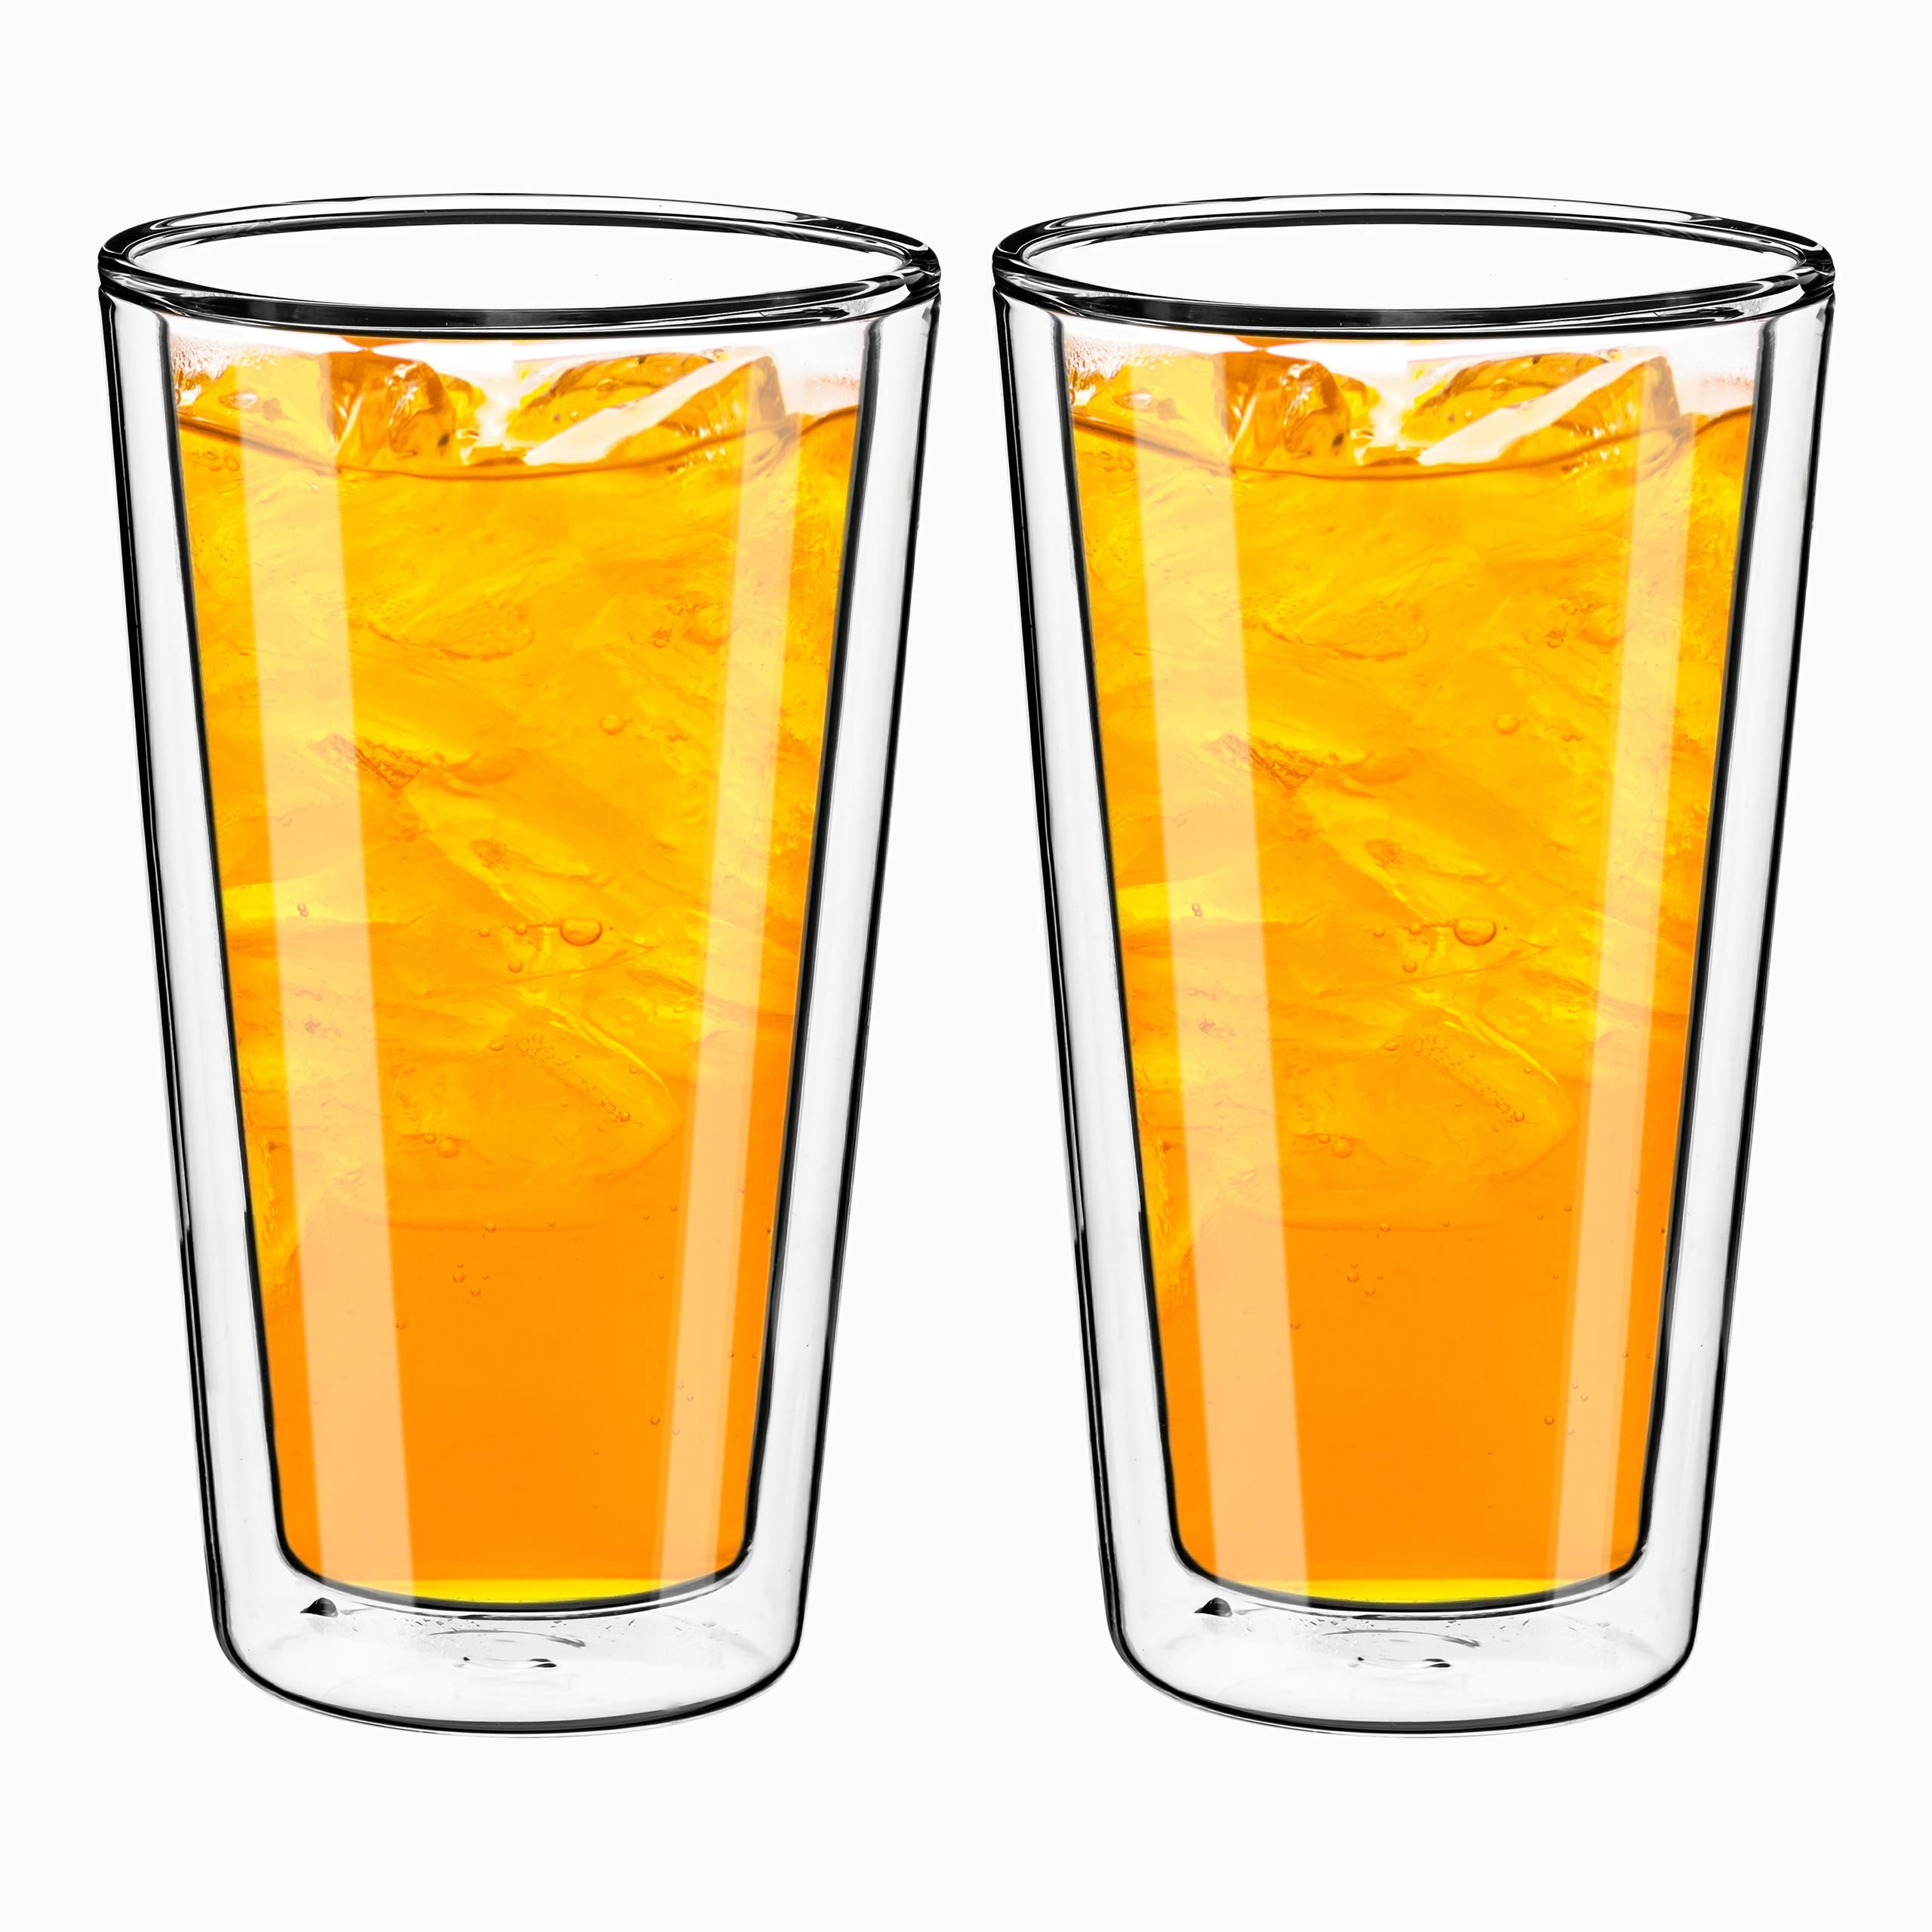 Style Setter Double Wall Tumblers - Set of 2 15.2oz Insulated Home Barware Glasses for Cold Drinks, Cocktails, Coffee, Hot Tea & Other Beverages - Unique Gift Idea for Birthday, Holiday & More